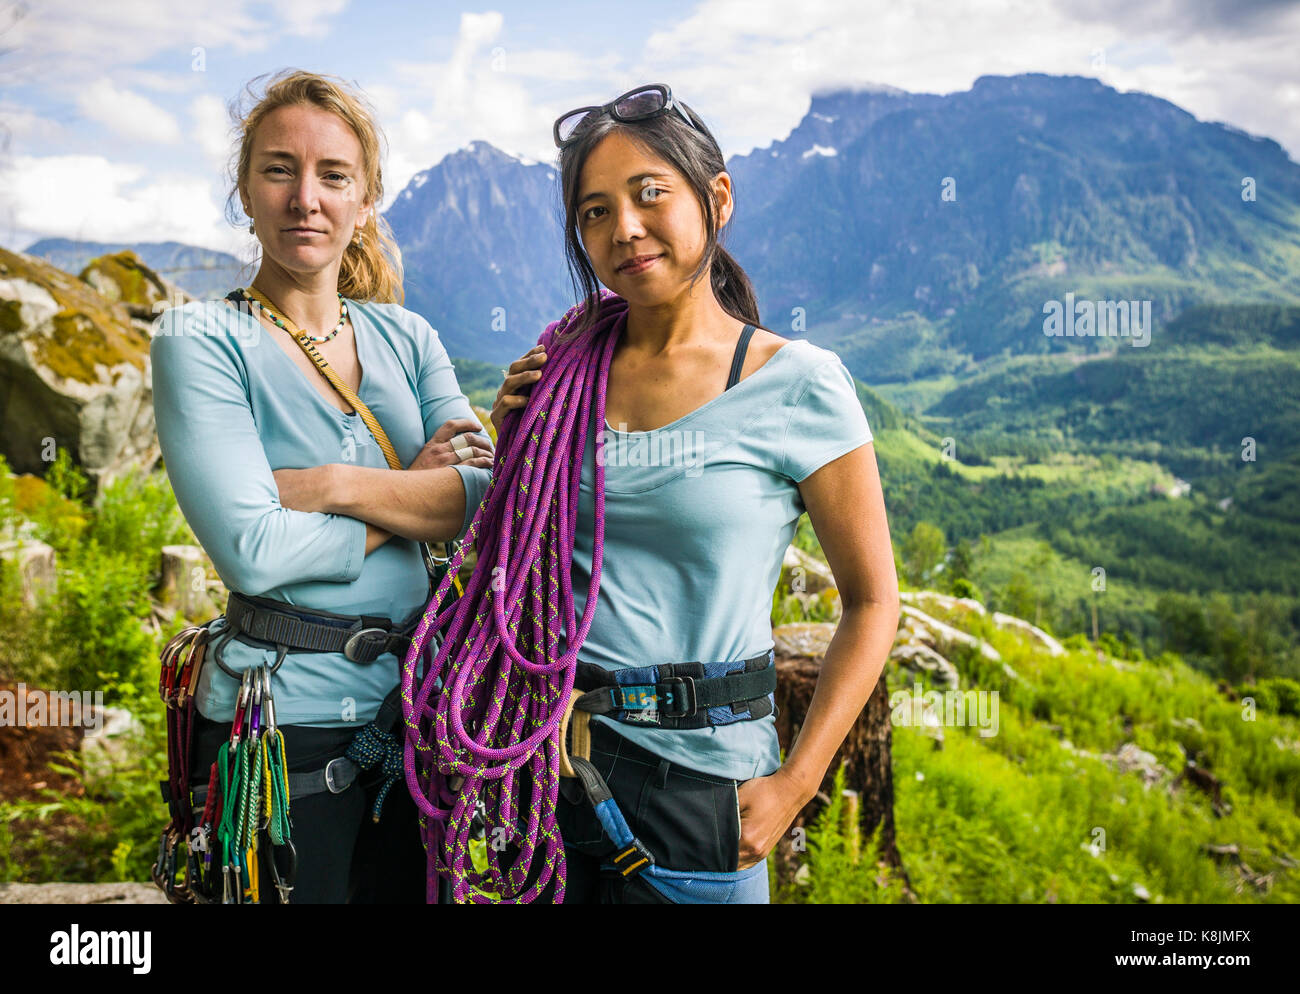 A portrait of two women rock climbers ready to go climbing,the Washington State Cascades, USA - Stock Image